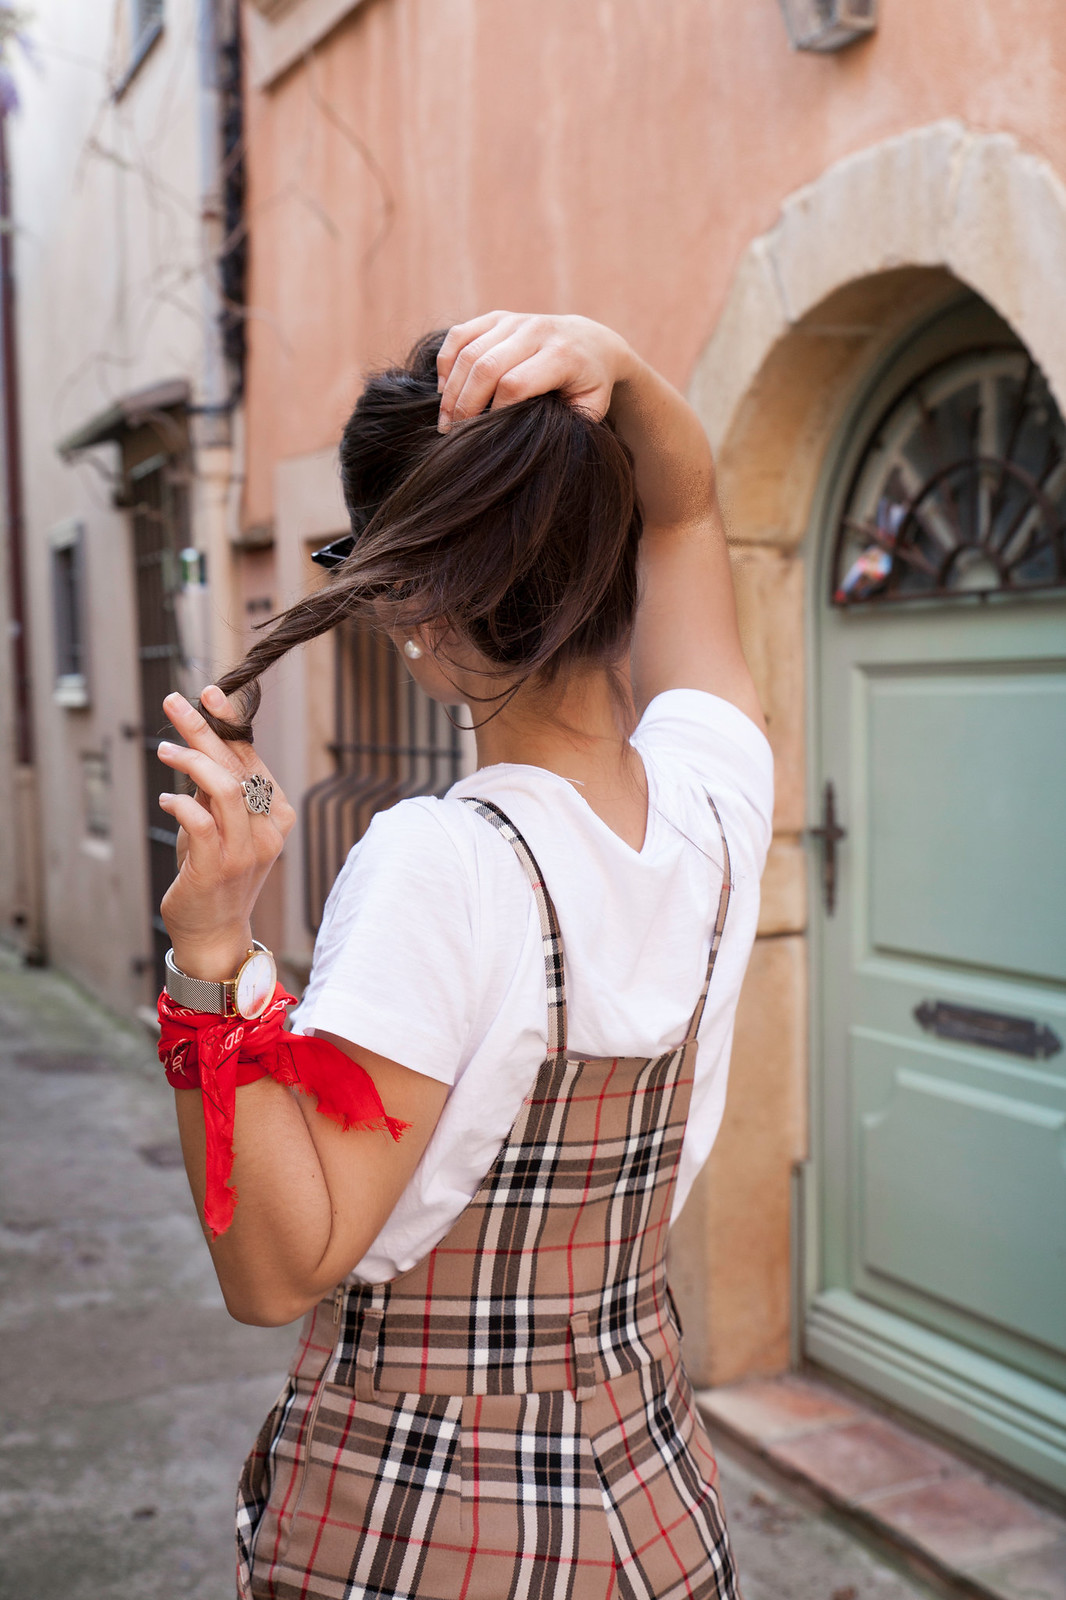 03_BURBERRY_OVERALL_TRICIRCULO_INFLUENCER_THEGUESTGIRL_LAURA_SANTOLARIA